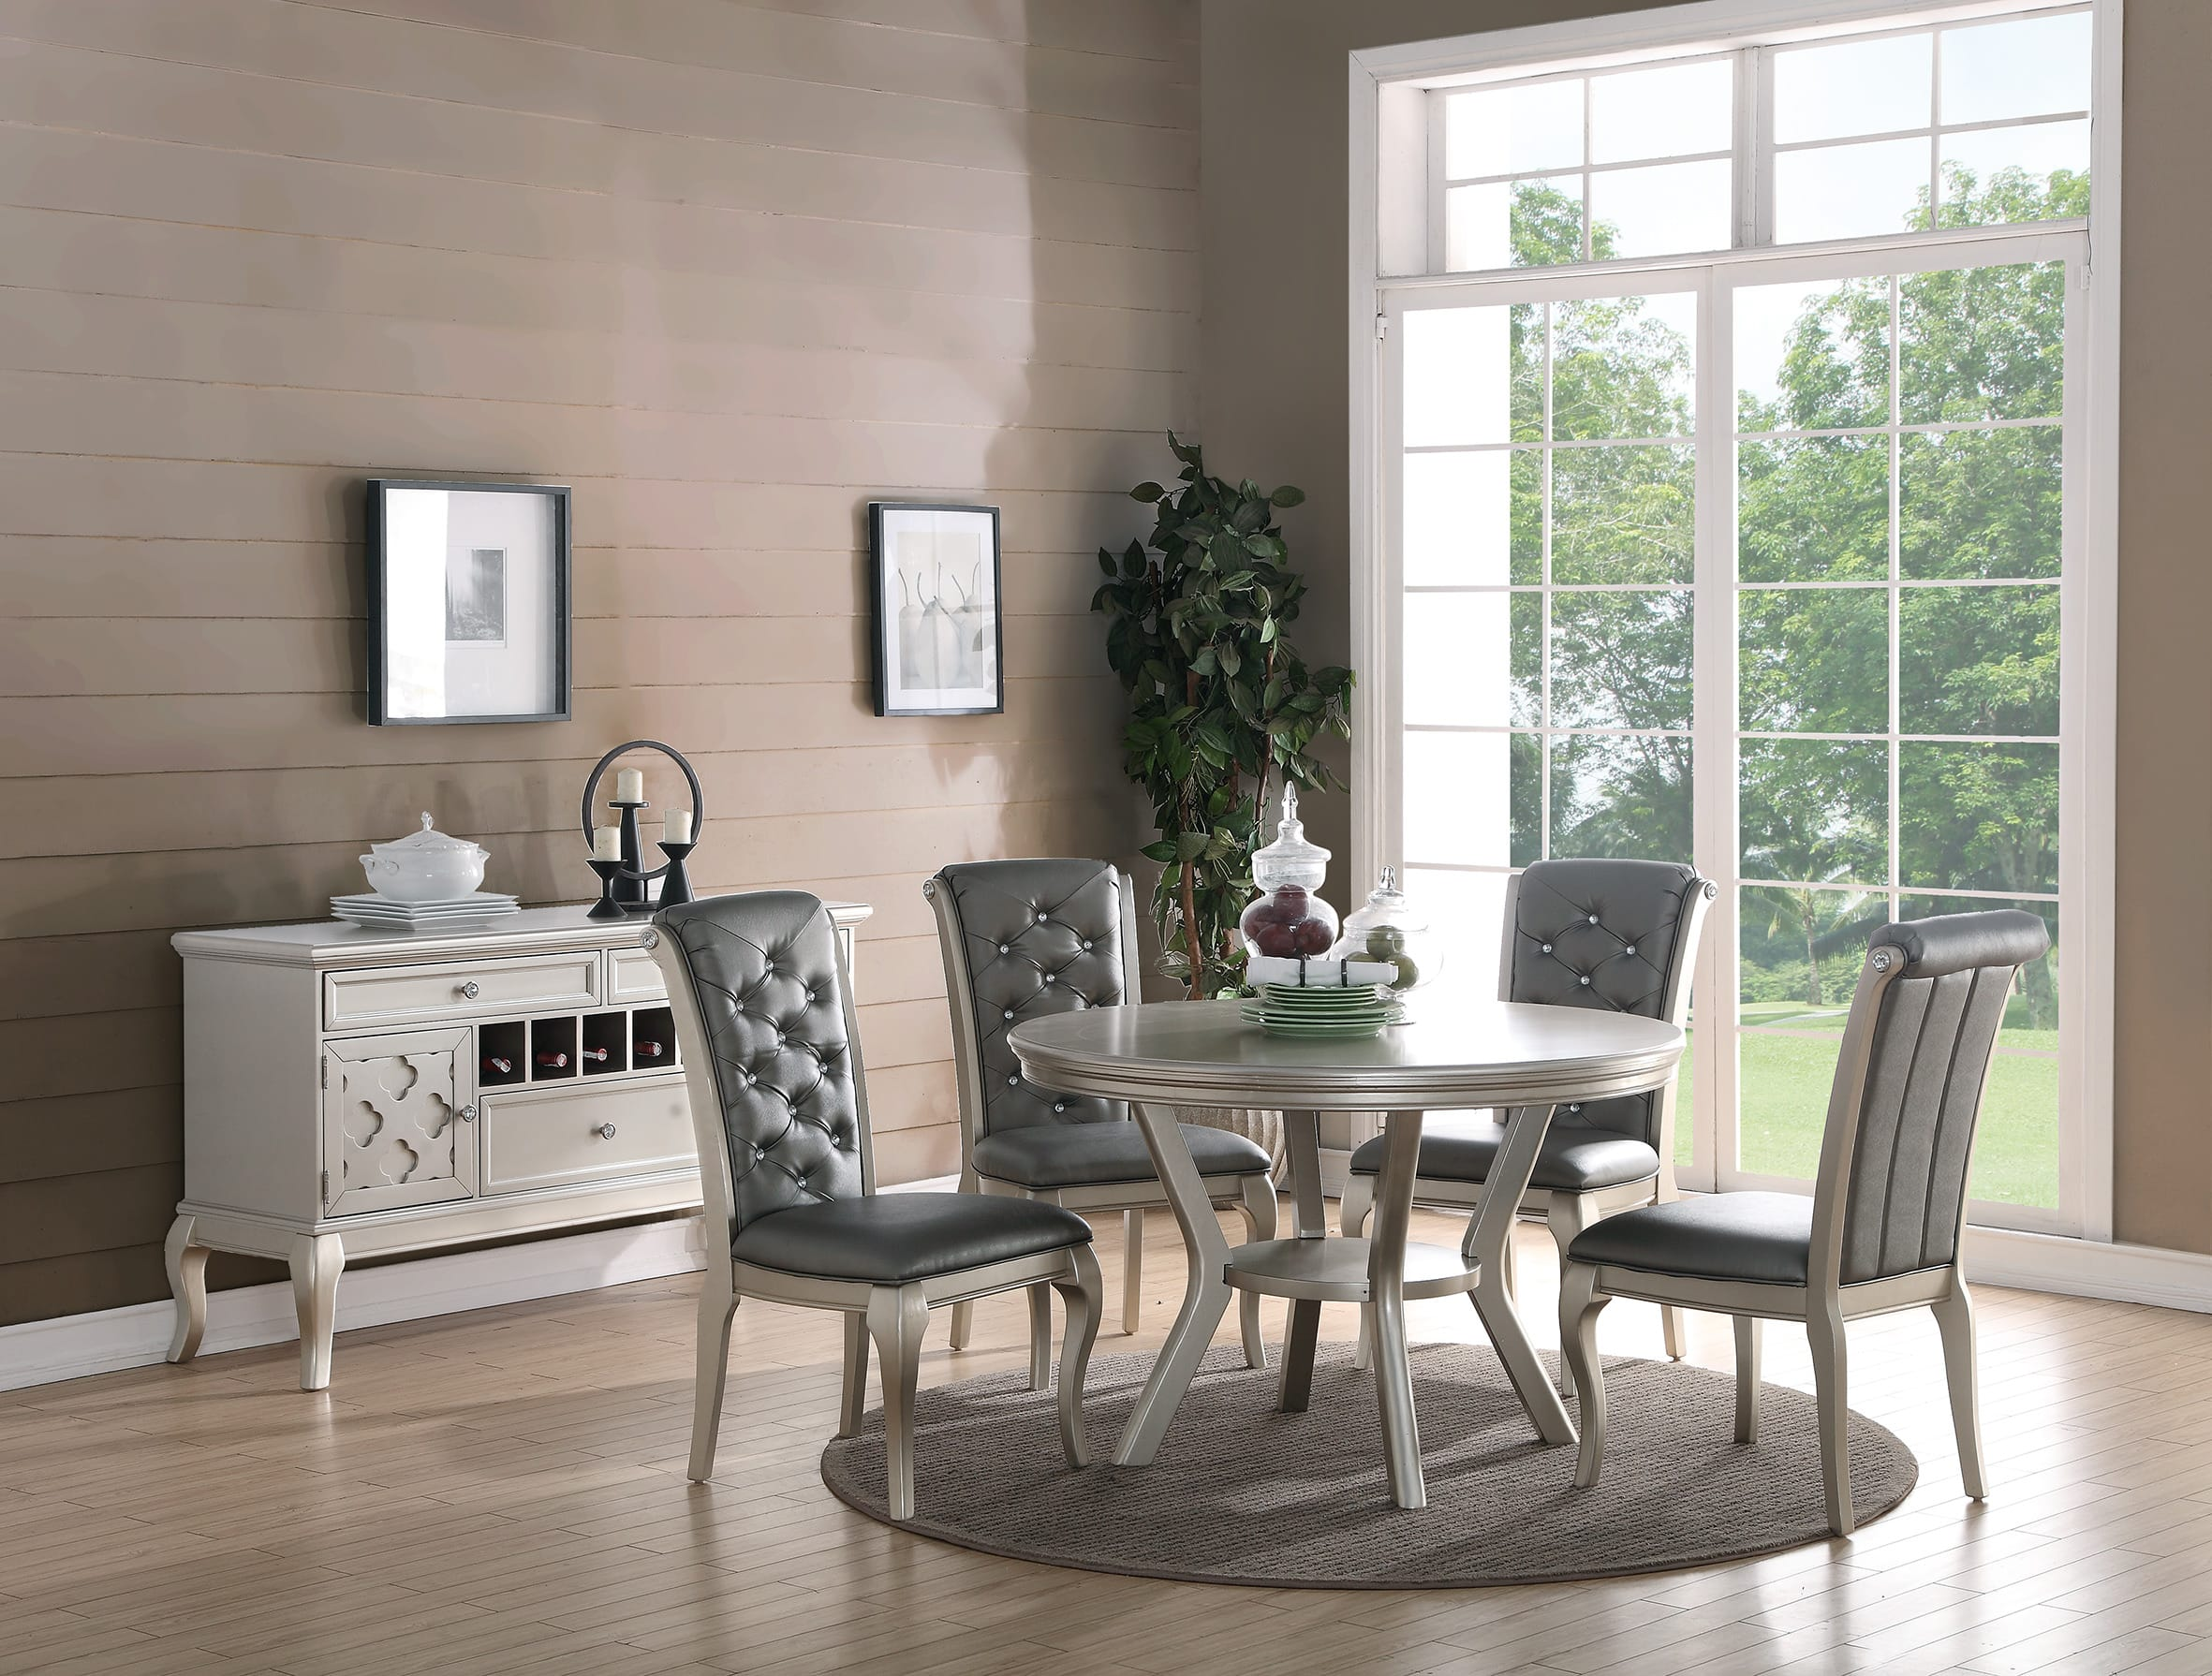 Dining Chair Set Of 2 F1540 Gray Dining Chair Set Of 2 By Poundex